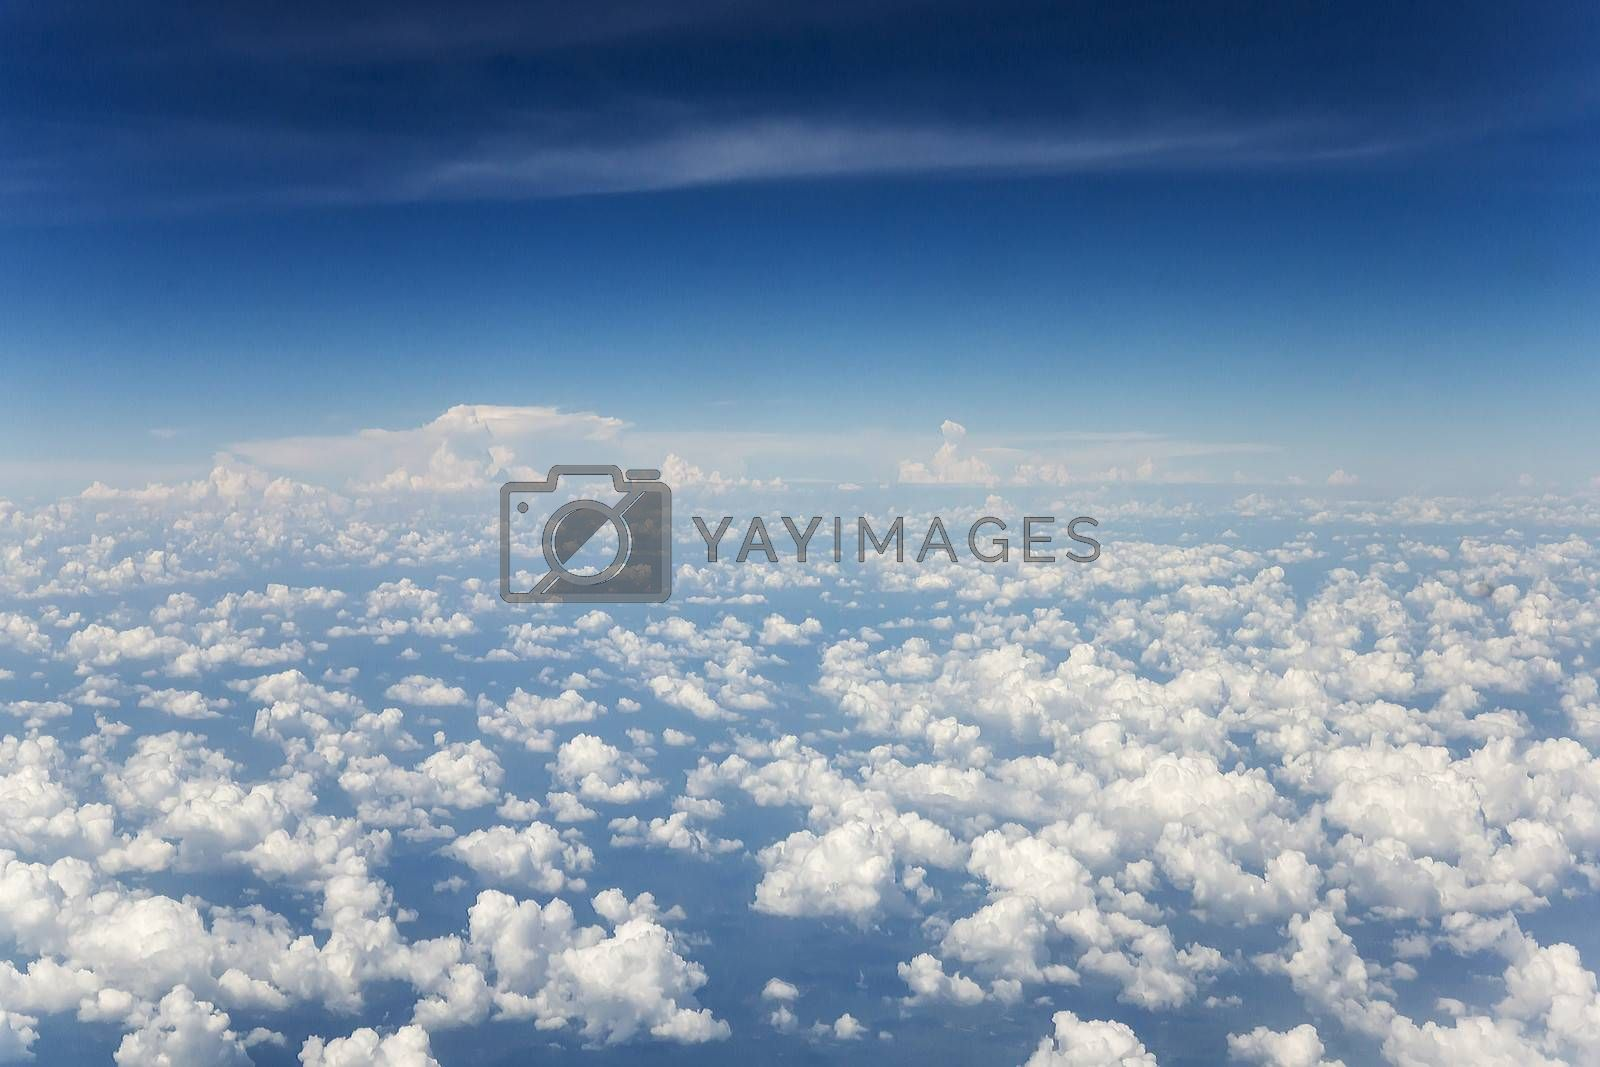 The beautiful white clouds and blue sky